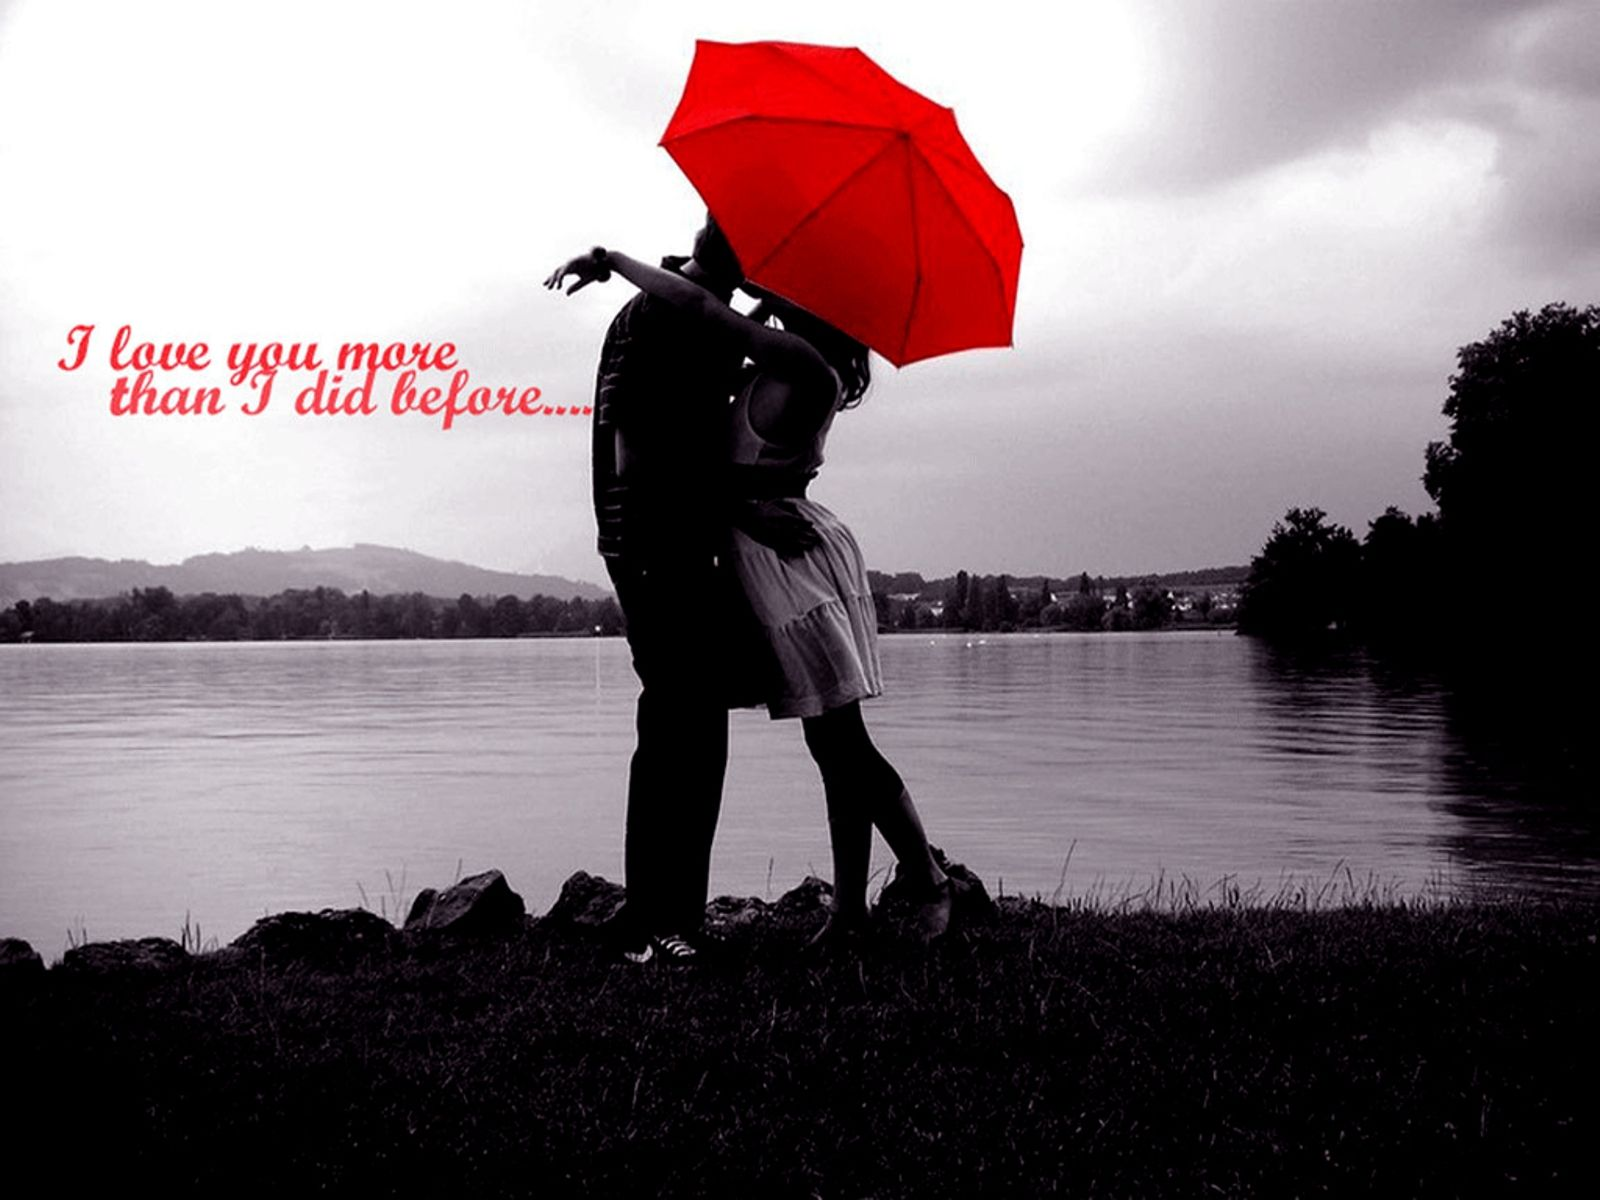 Loving couple after rain wallpaper download hd wallpaper pictures - Baby Couple Wallpaper Picture Cute Wallpapers Pinterest Couple Wallpaper And Wallpaper